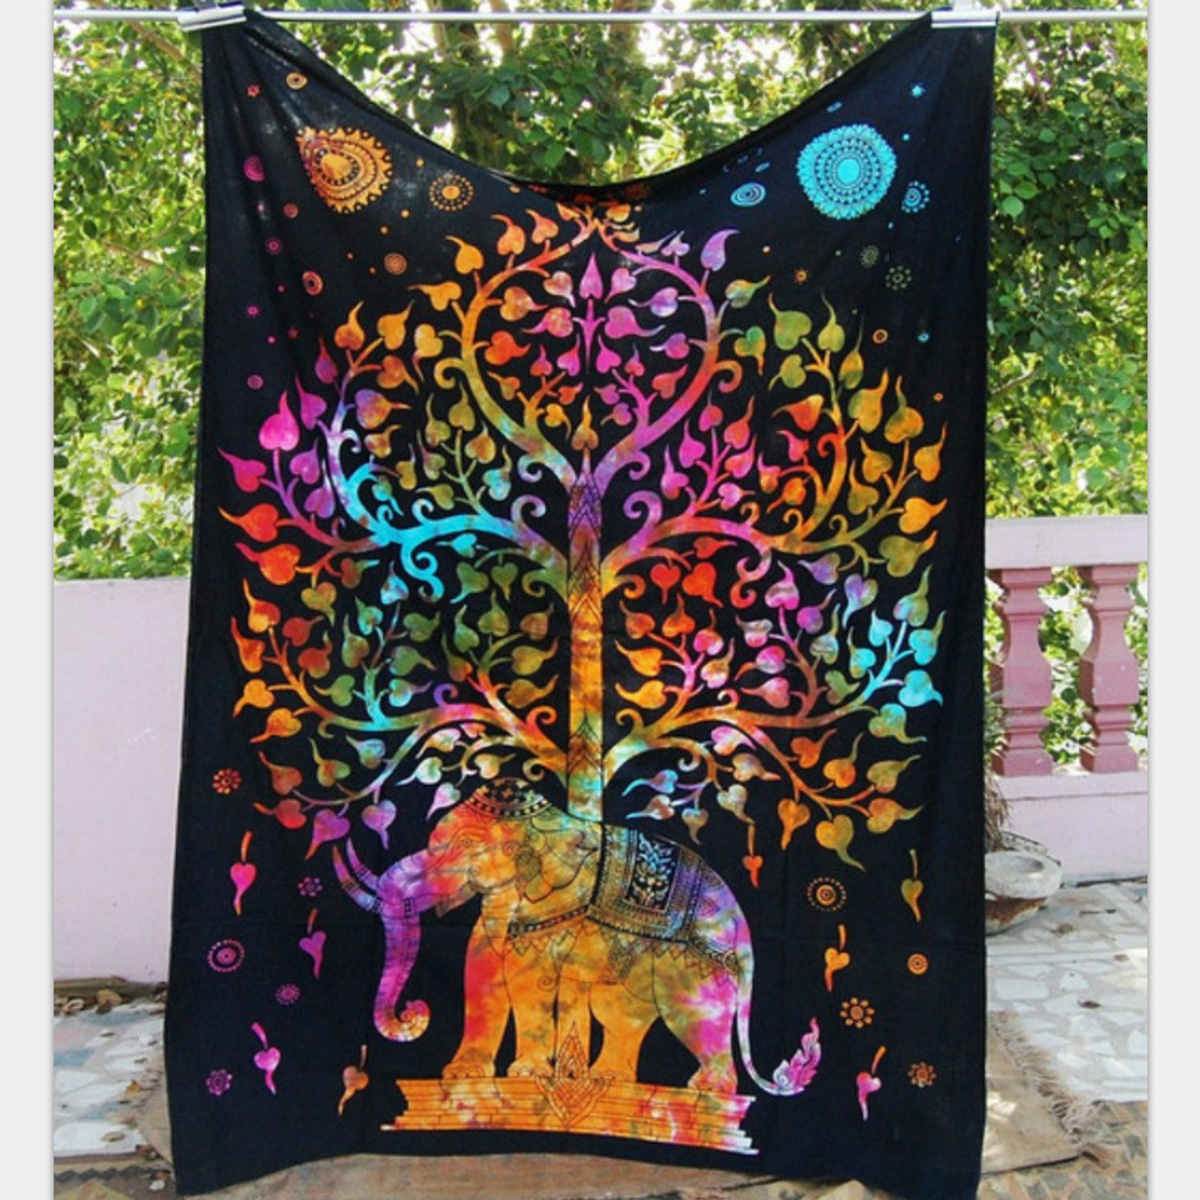 Elephant Mandala Tapestry Throw Towel Hippie Tapestry Floral Printed Home Decor Wall Tapestries Bedspread 210*150CM 28